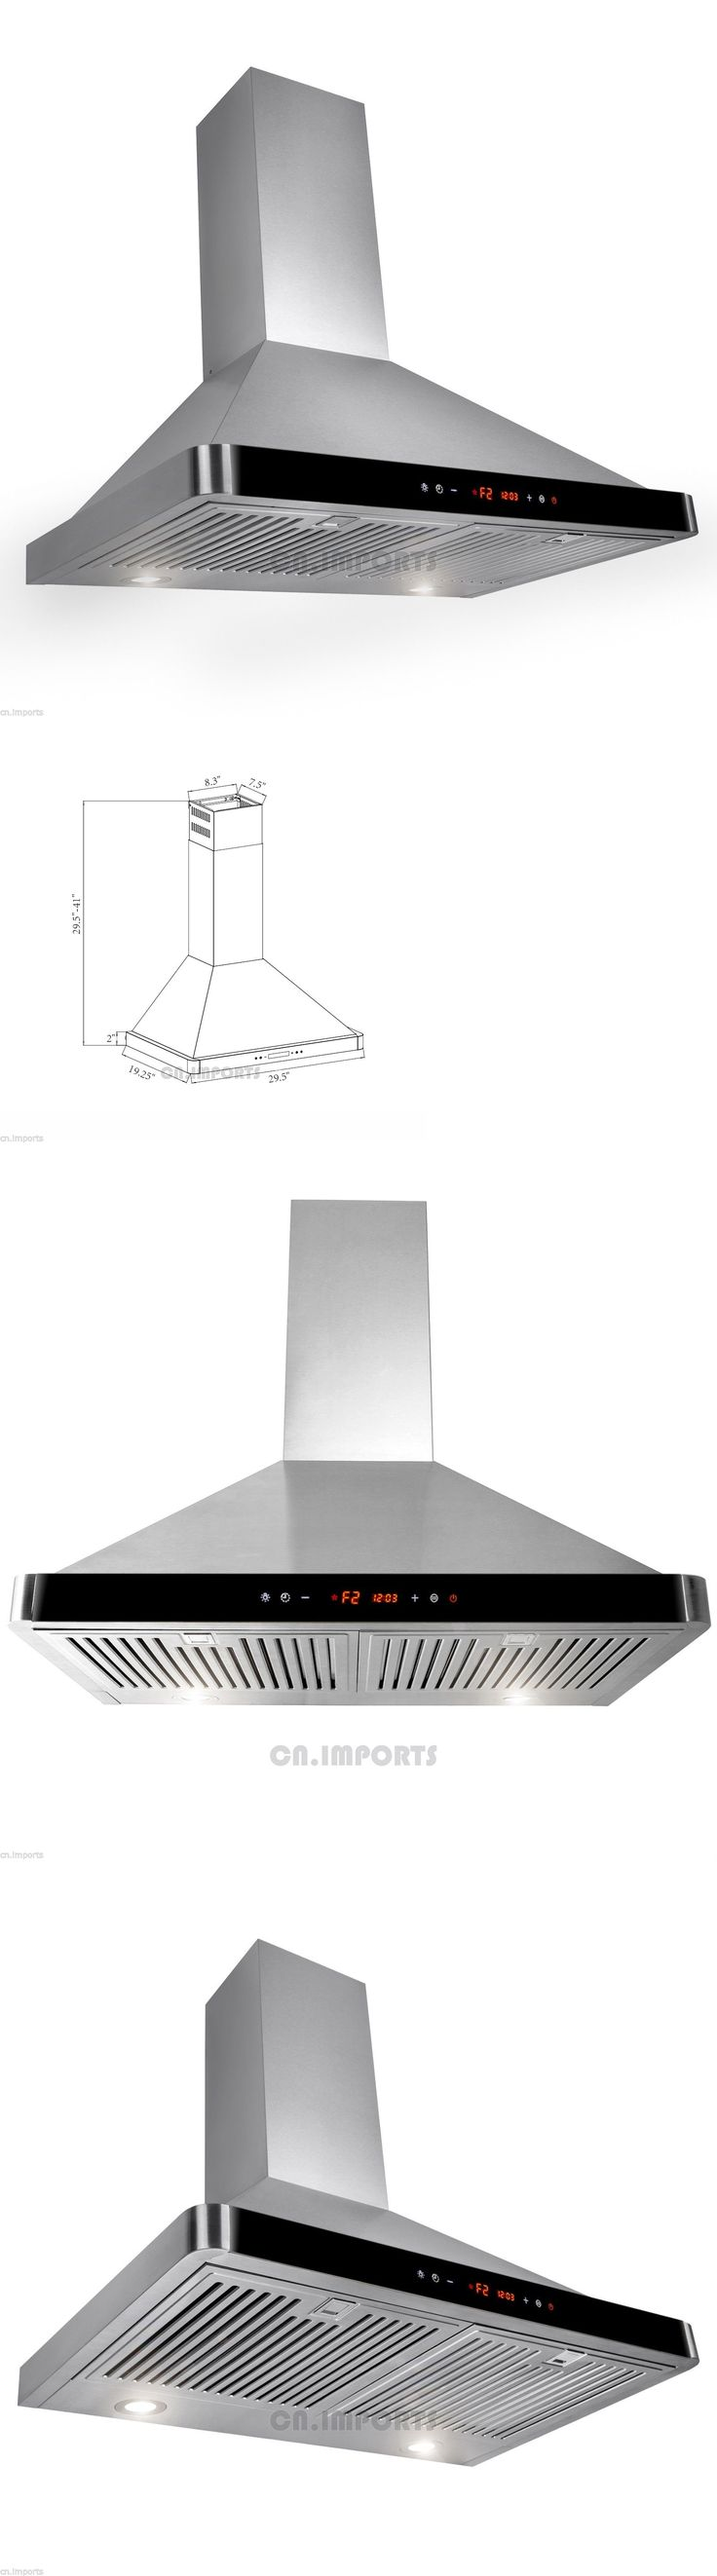 Major Appliances: 30 Stainless Steel Wall Mount Kitchen Range Hood W/ Modern Black Touch Control BUY IT NOW ONLY: $199.99